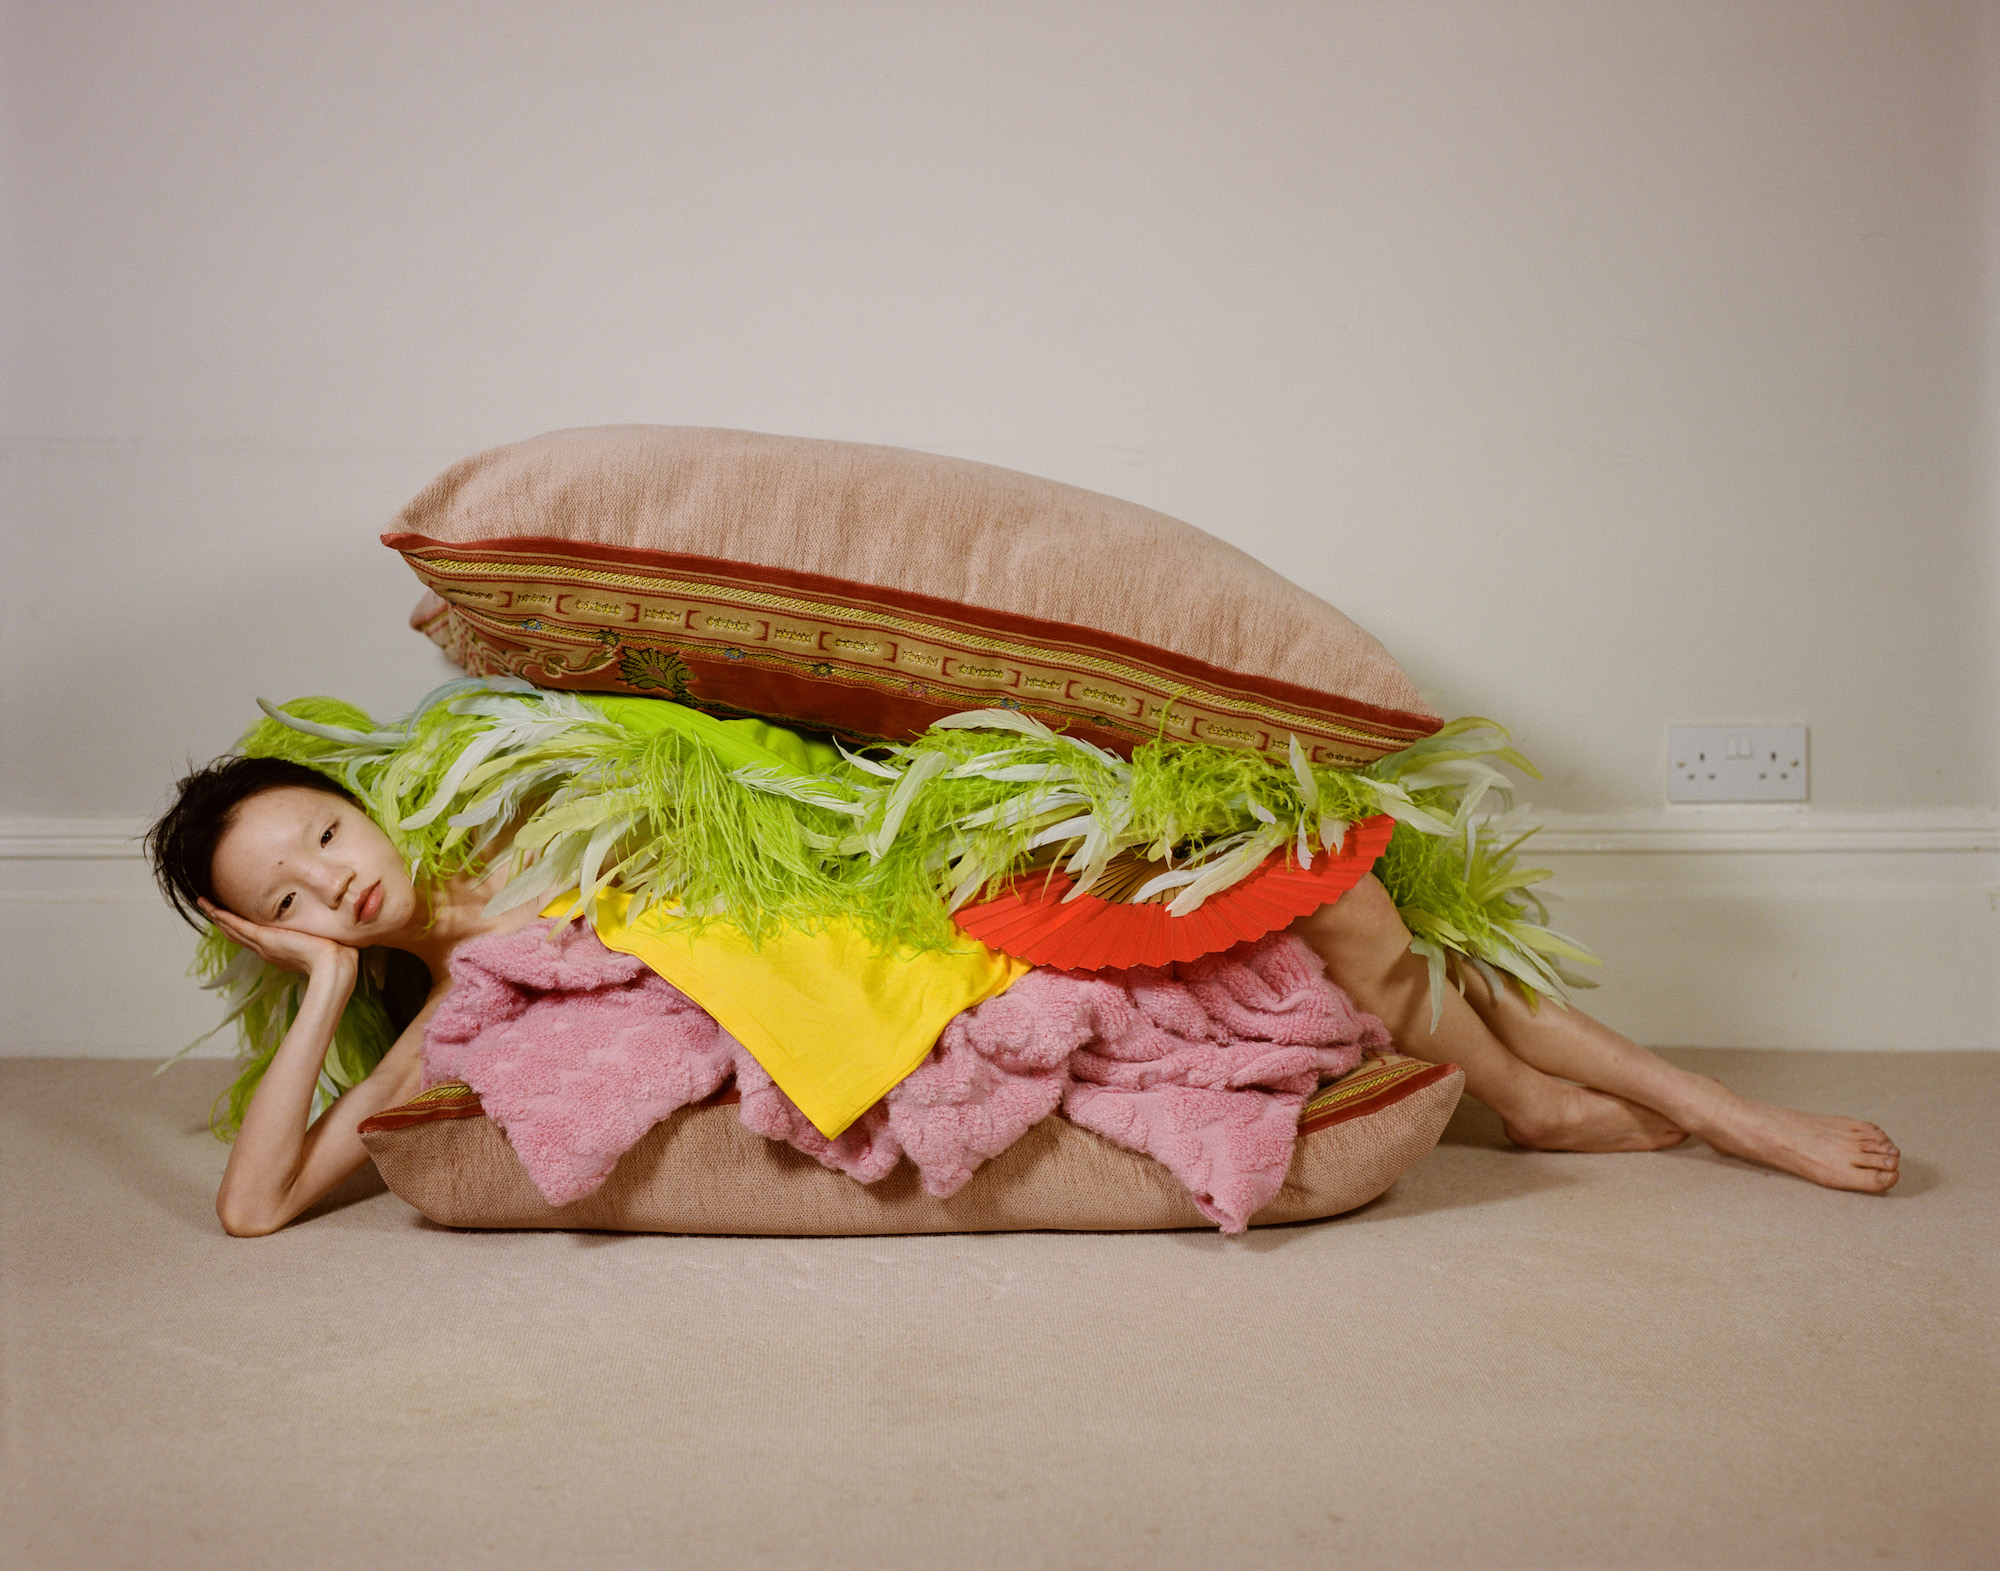 Part of a fashion story shot for Luncheon Magazine. Art direction and styling by Rottingdean Bazaar